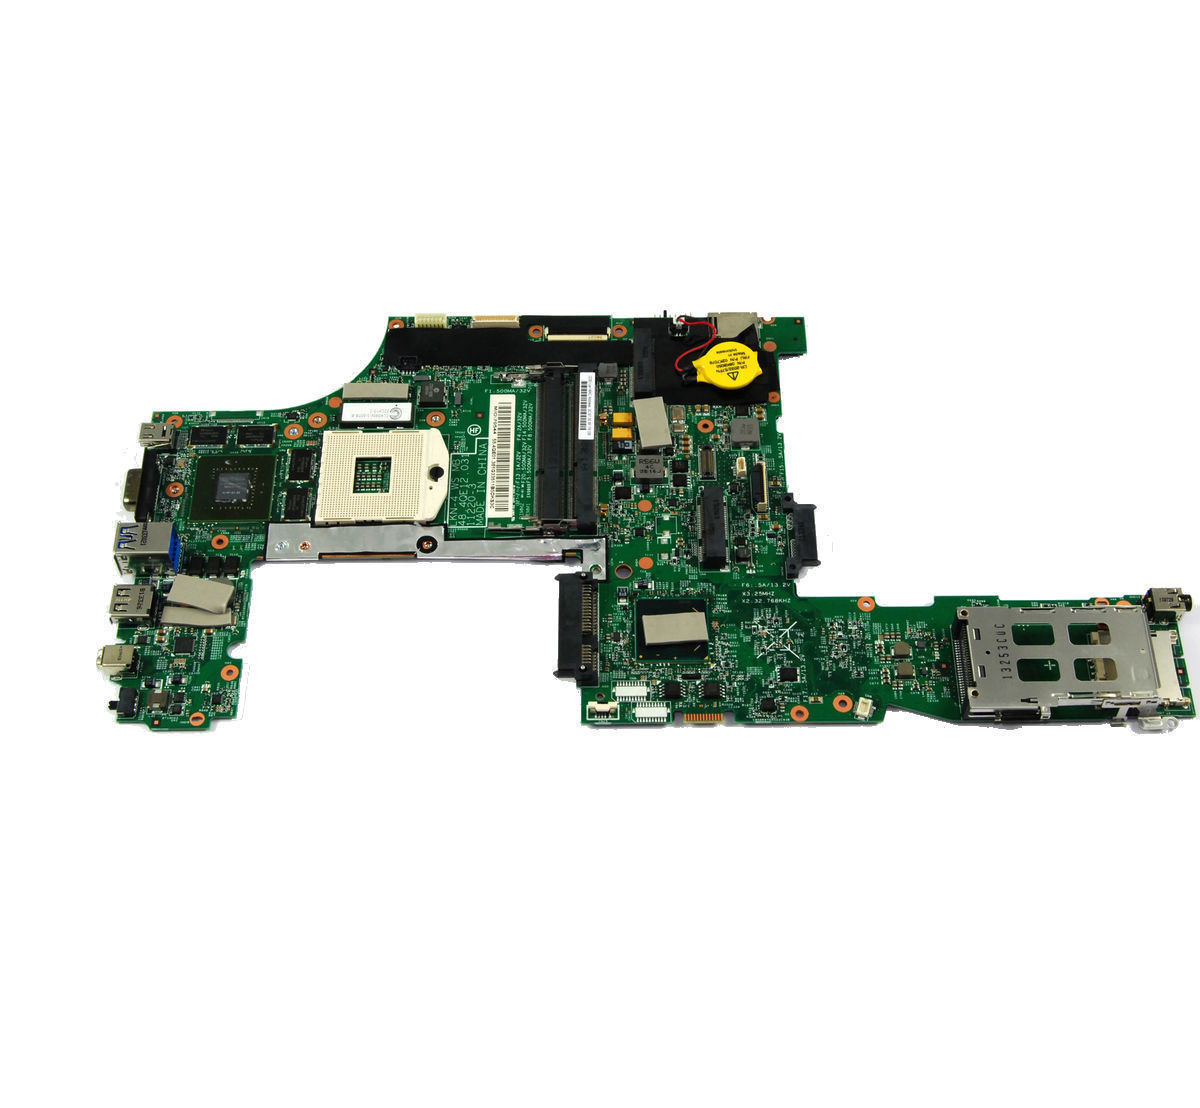 New Genuine Motherboard for Lenovo ThinkPad T530 W530 Motherboard 04X1505